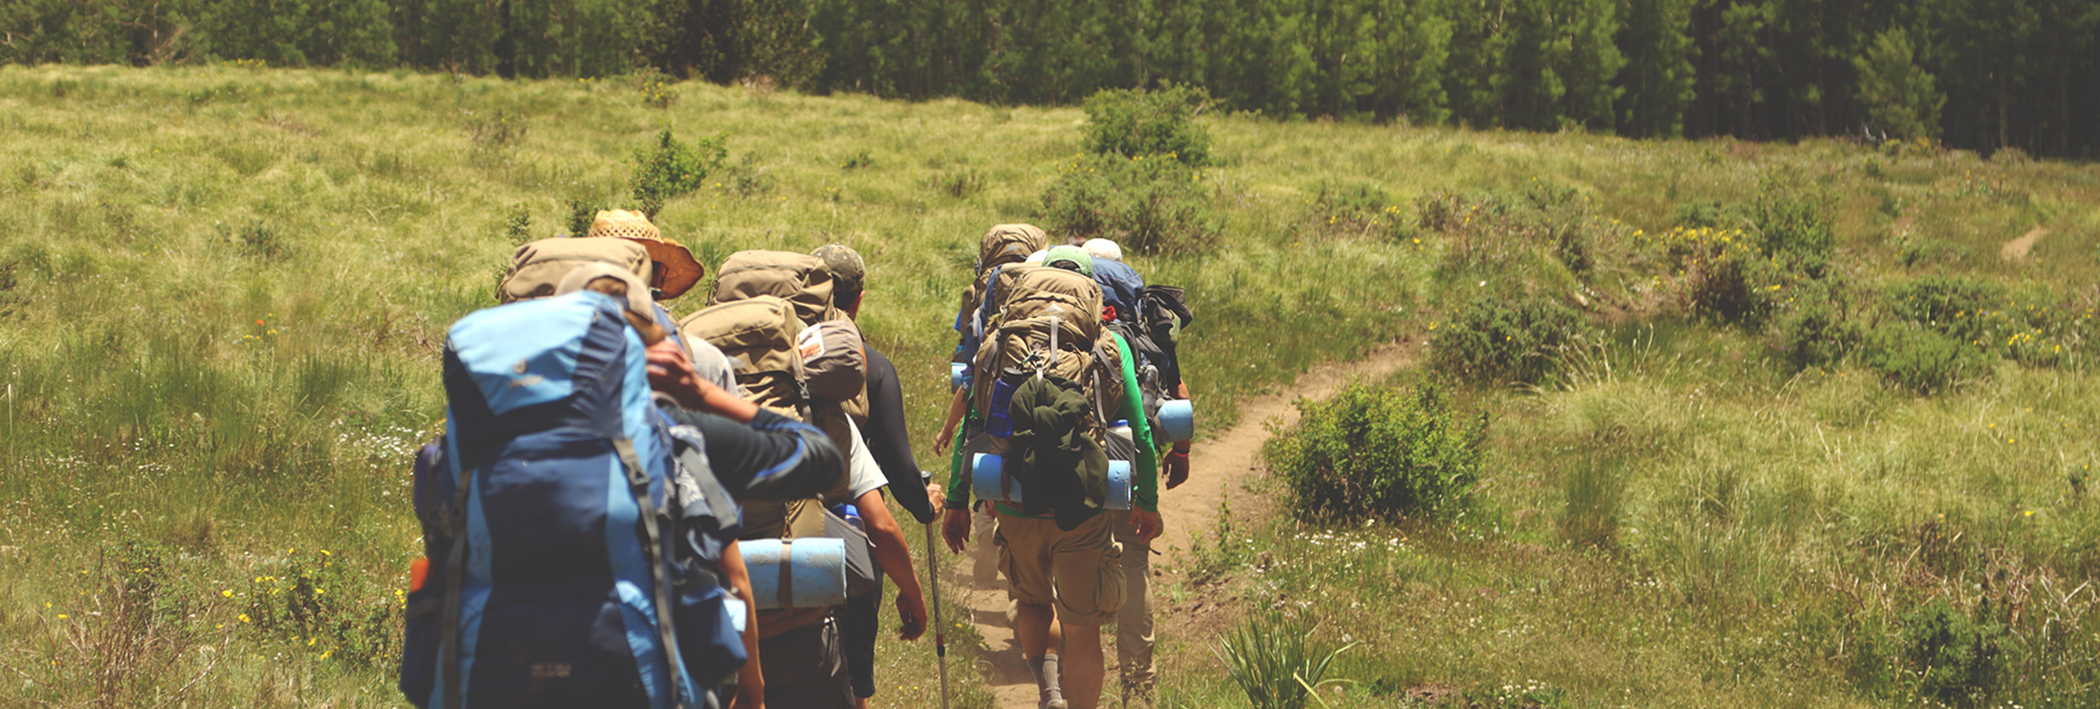 Group hiking - ithriveX Performance Cream provides muscle & joint pain relief.